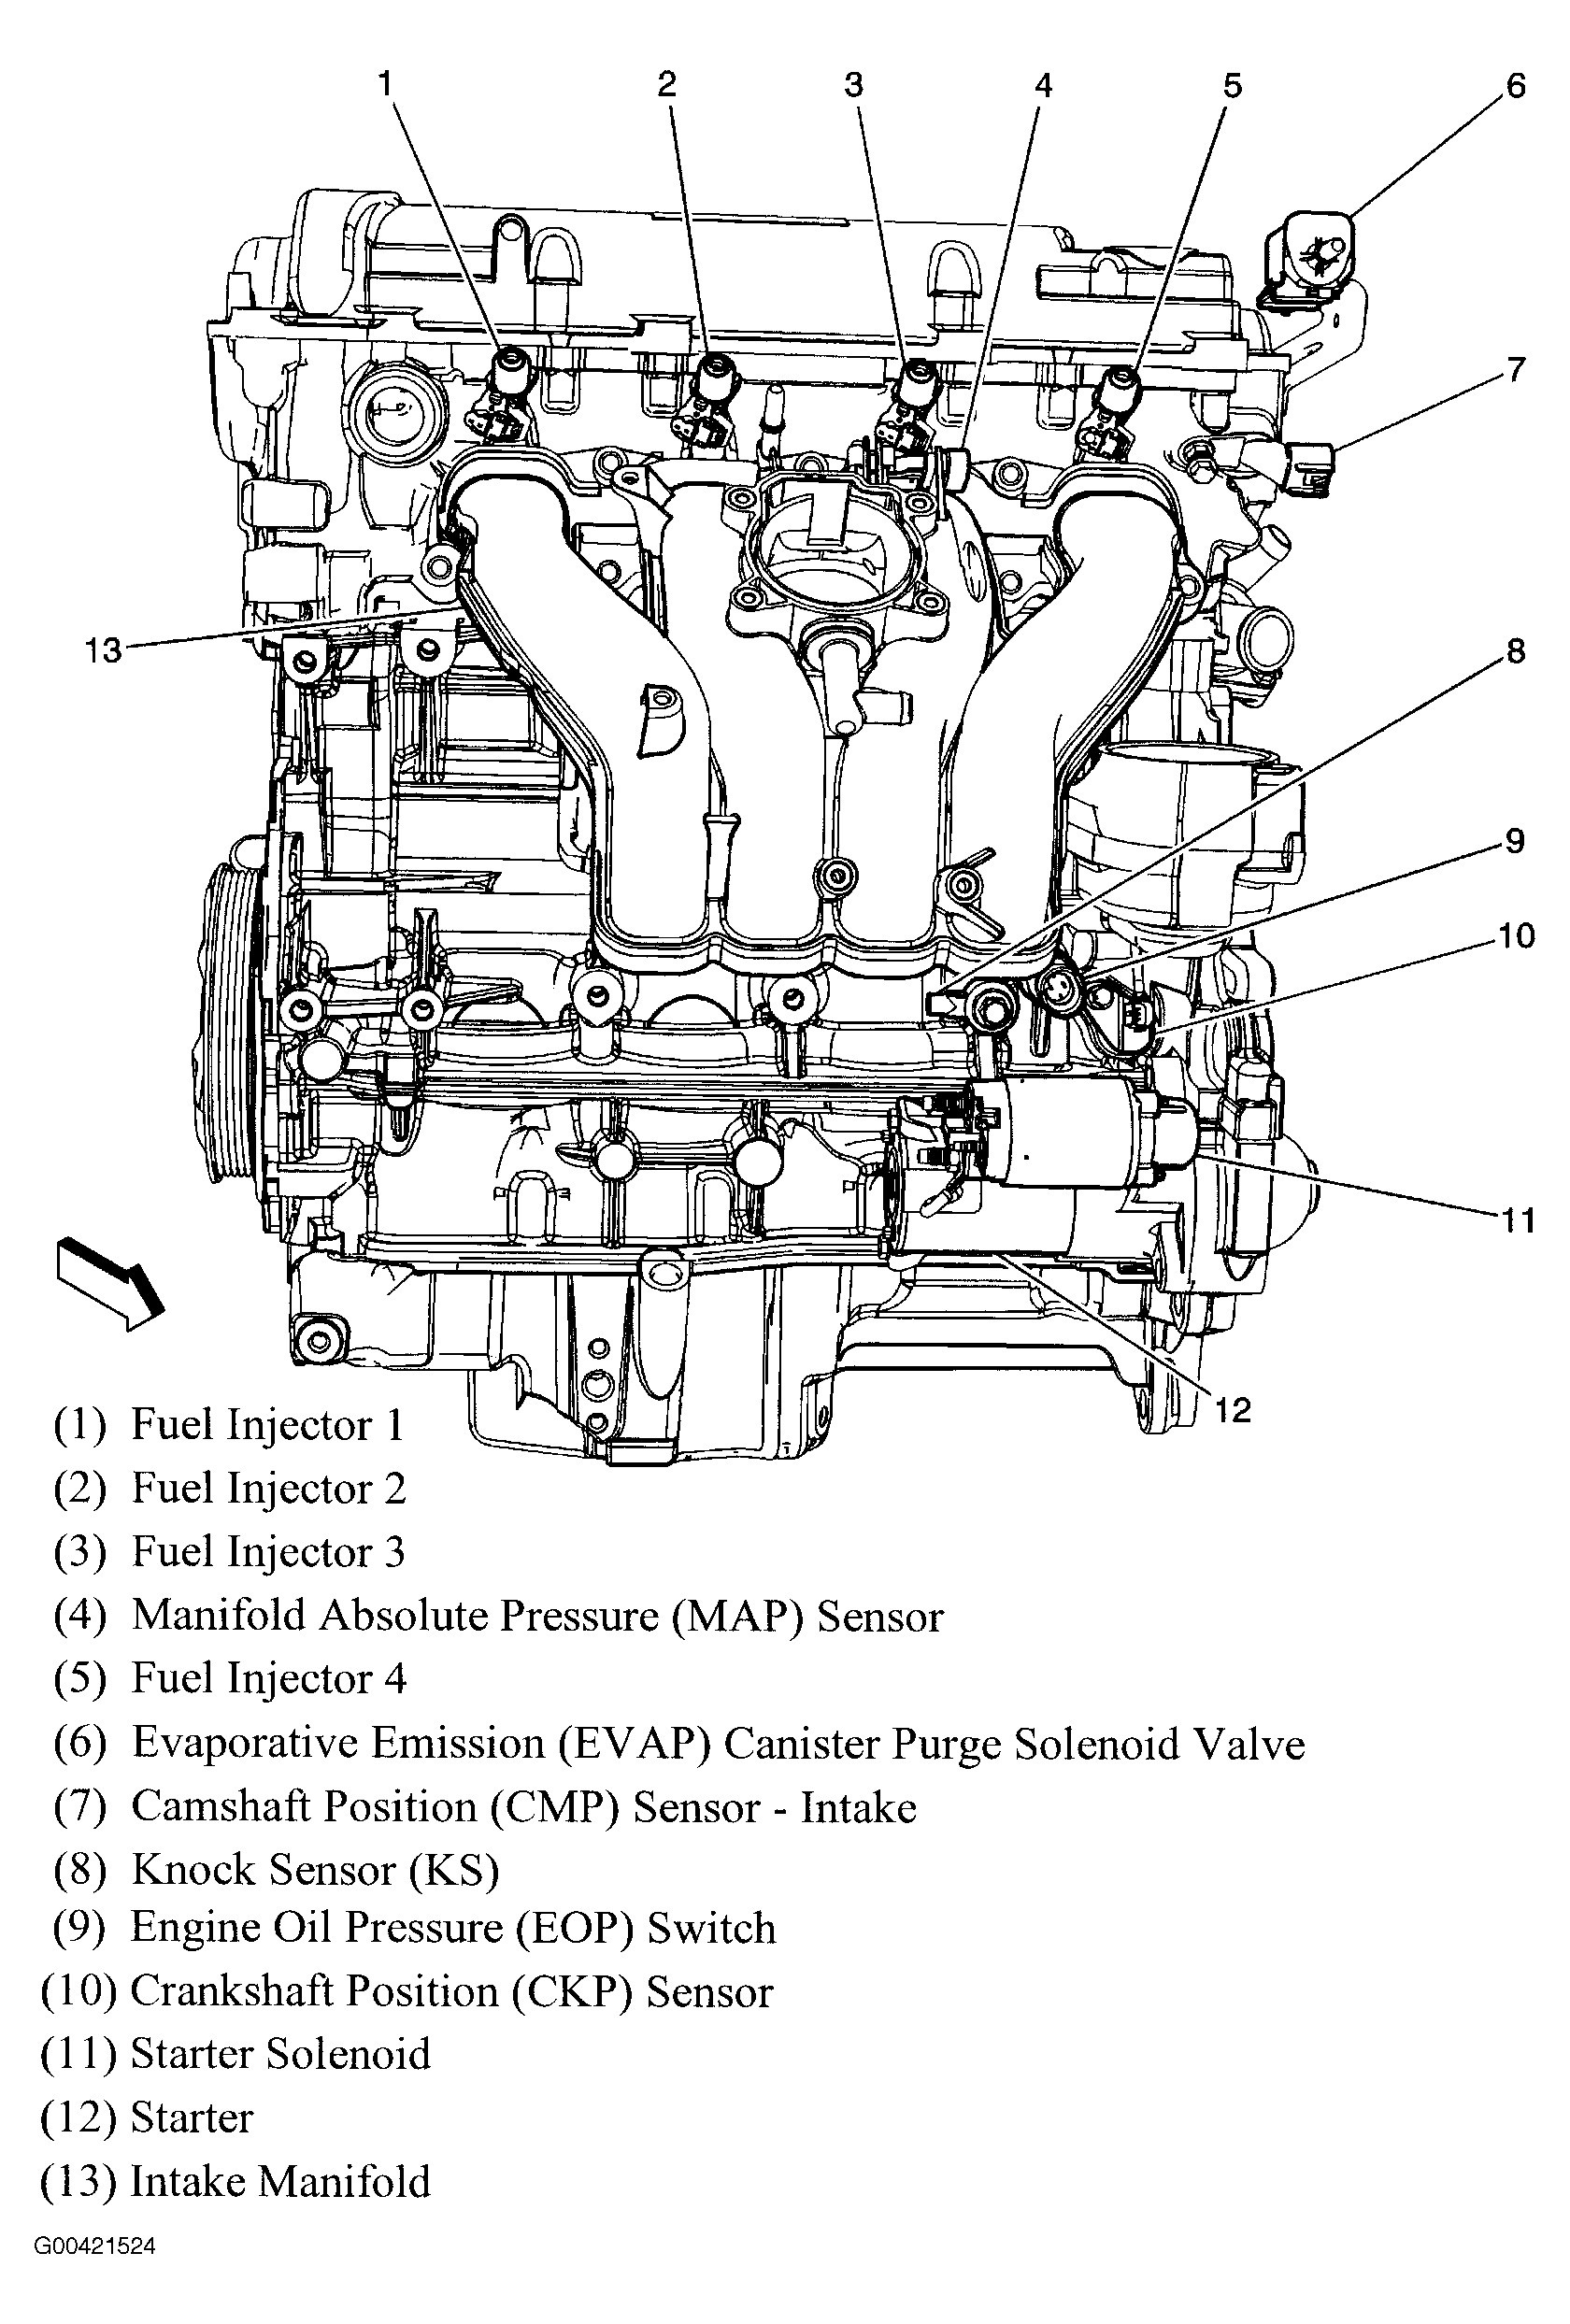 hight resolution of subaru 2 engine diagram data wiring diagram subaru engine parts diagram